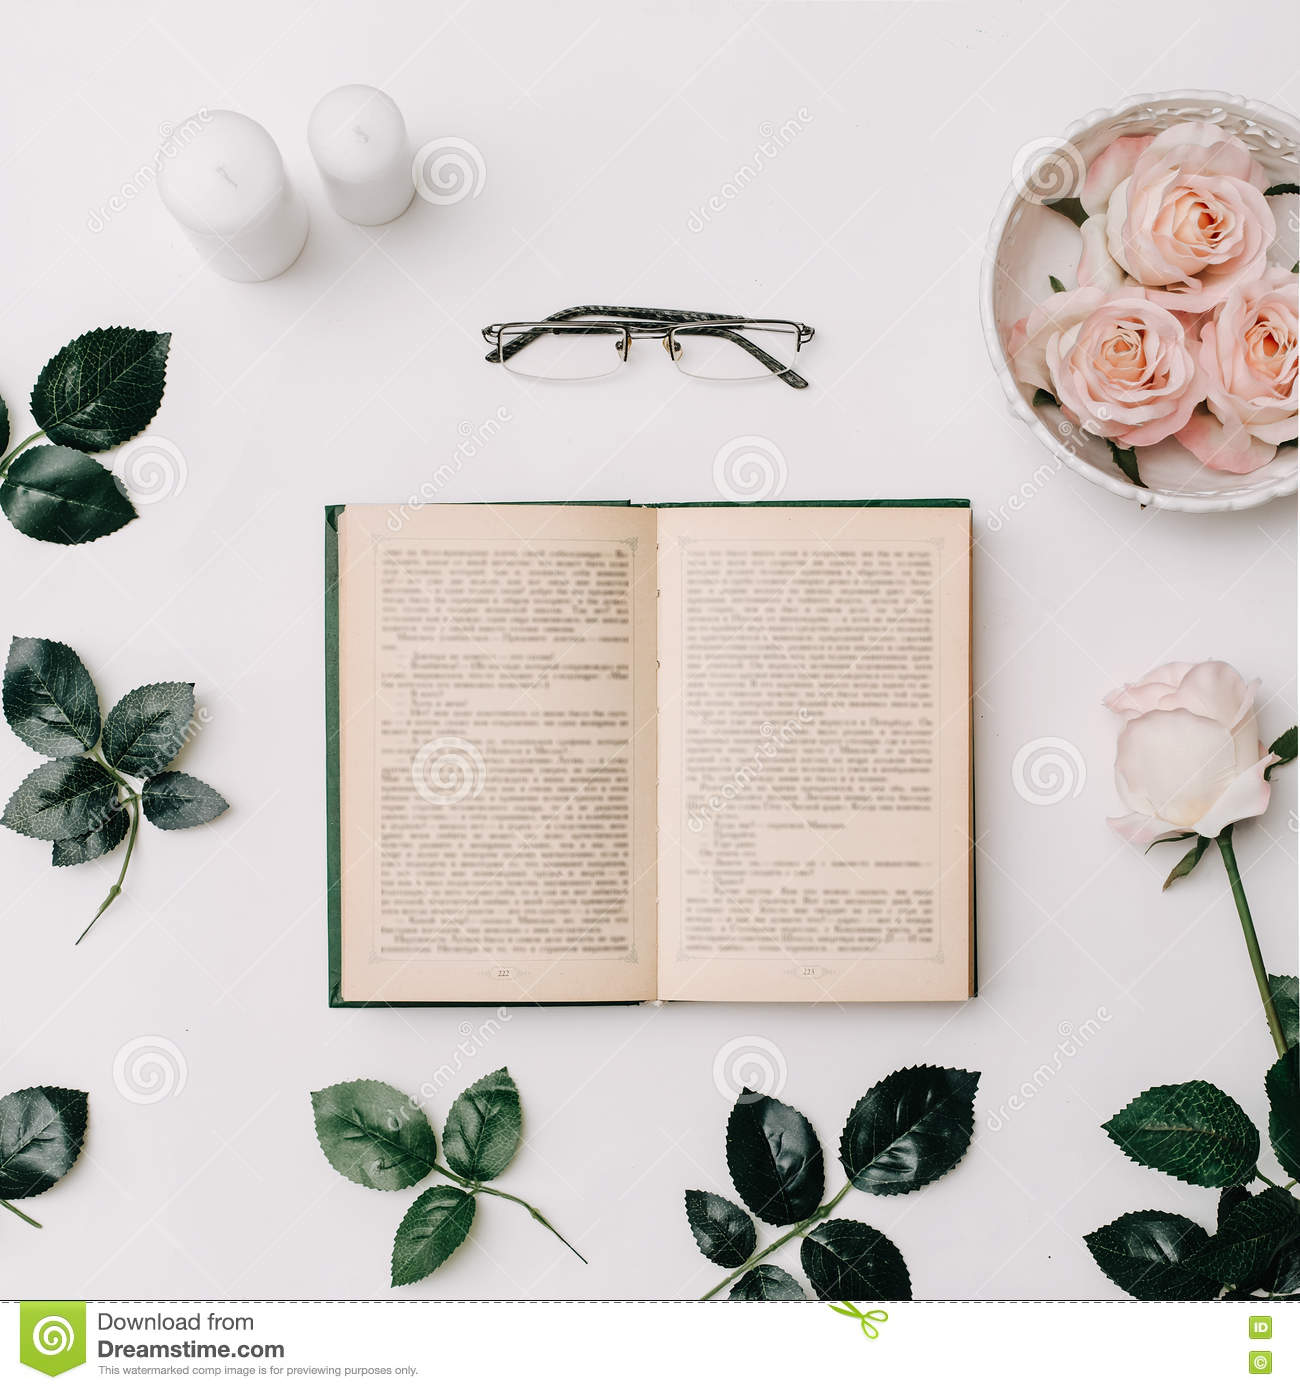 Photo Books Lay Flat: Opened Book, Glasses, Pink Roses On White Background. Flat